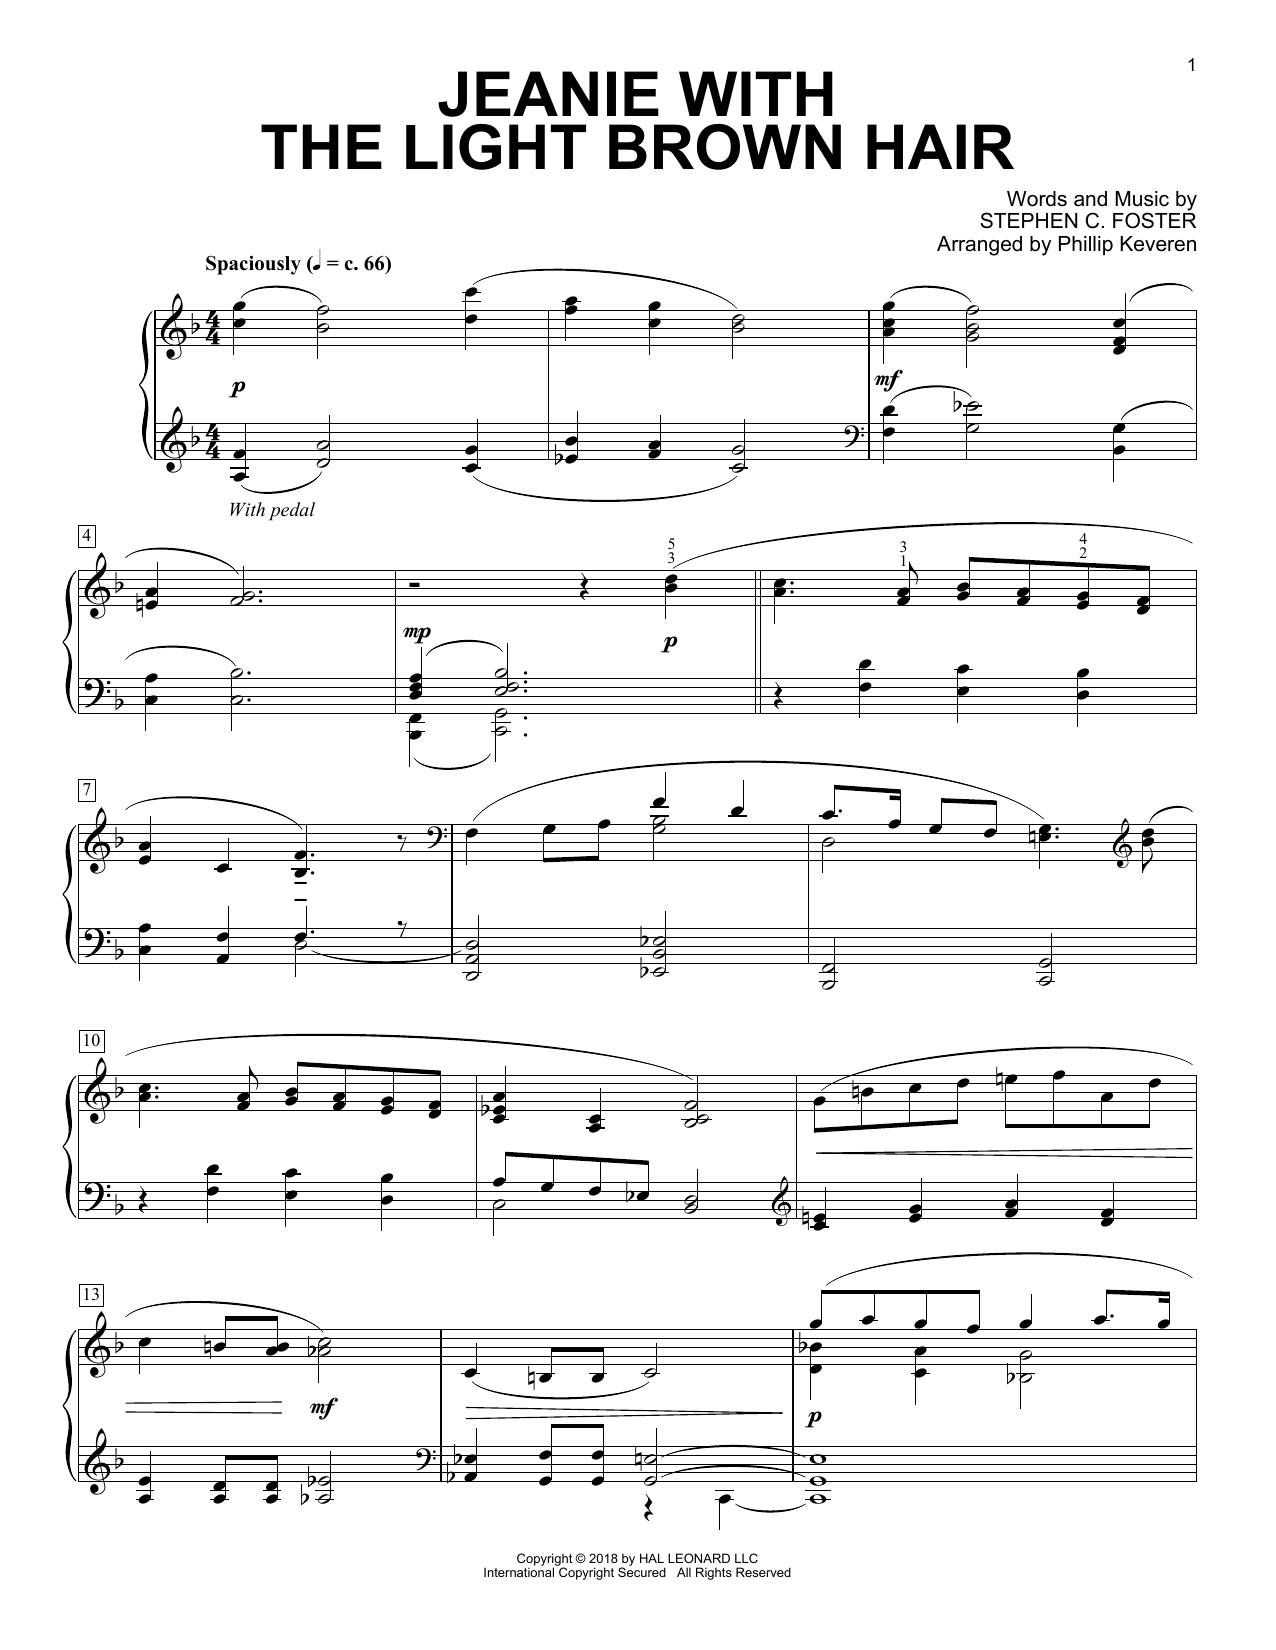 Download Phillip Keveren 'Jeanie With The Light Brown Hair' Digital Sheet Music Notes & Chords and start playing in minutes